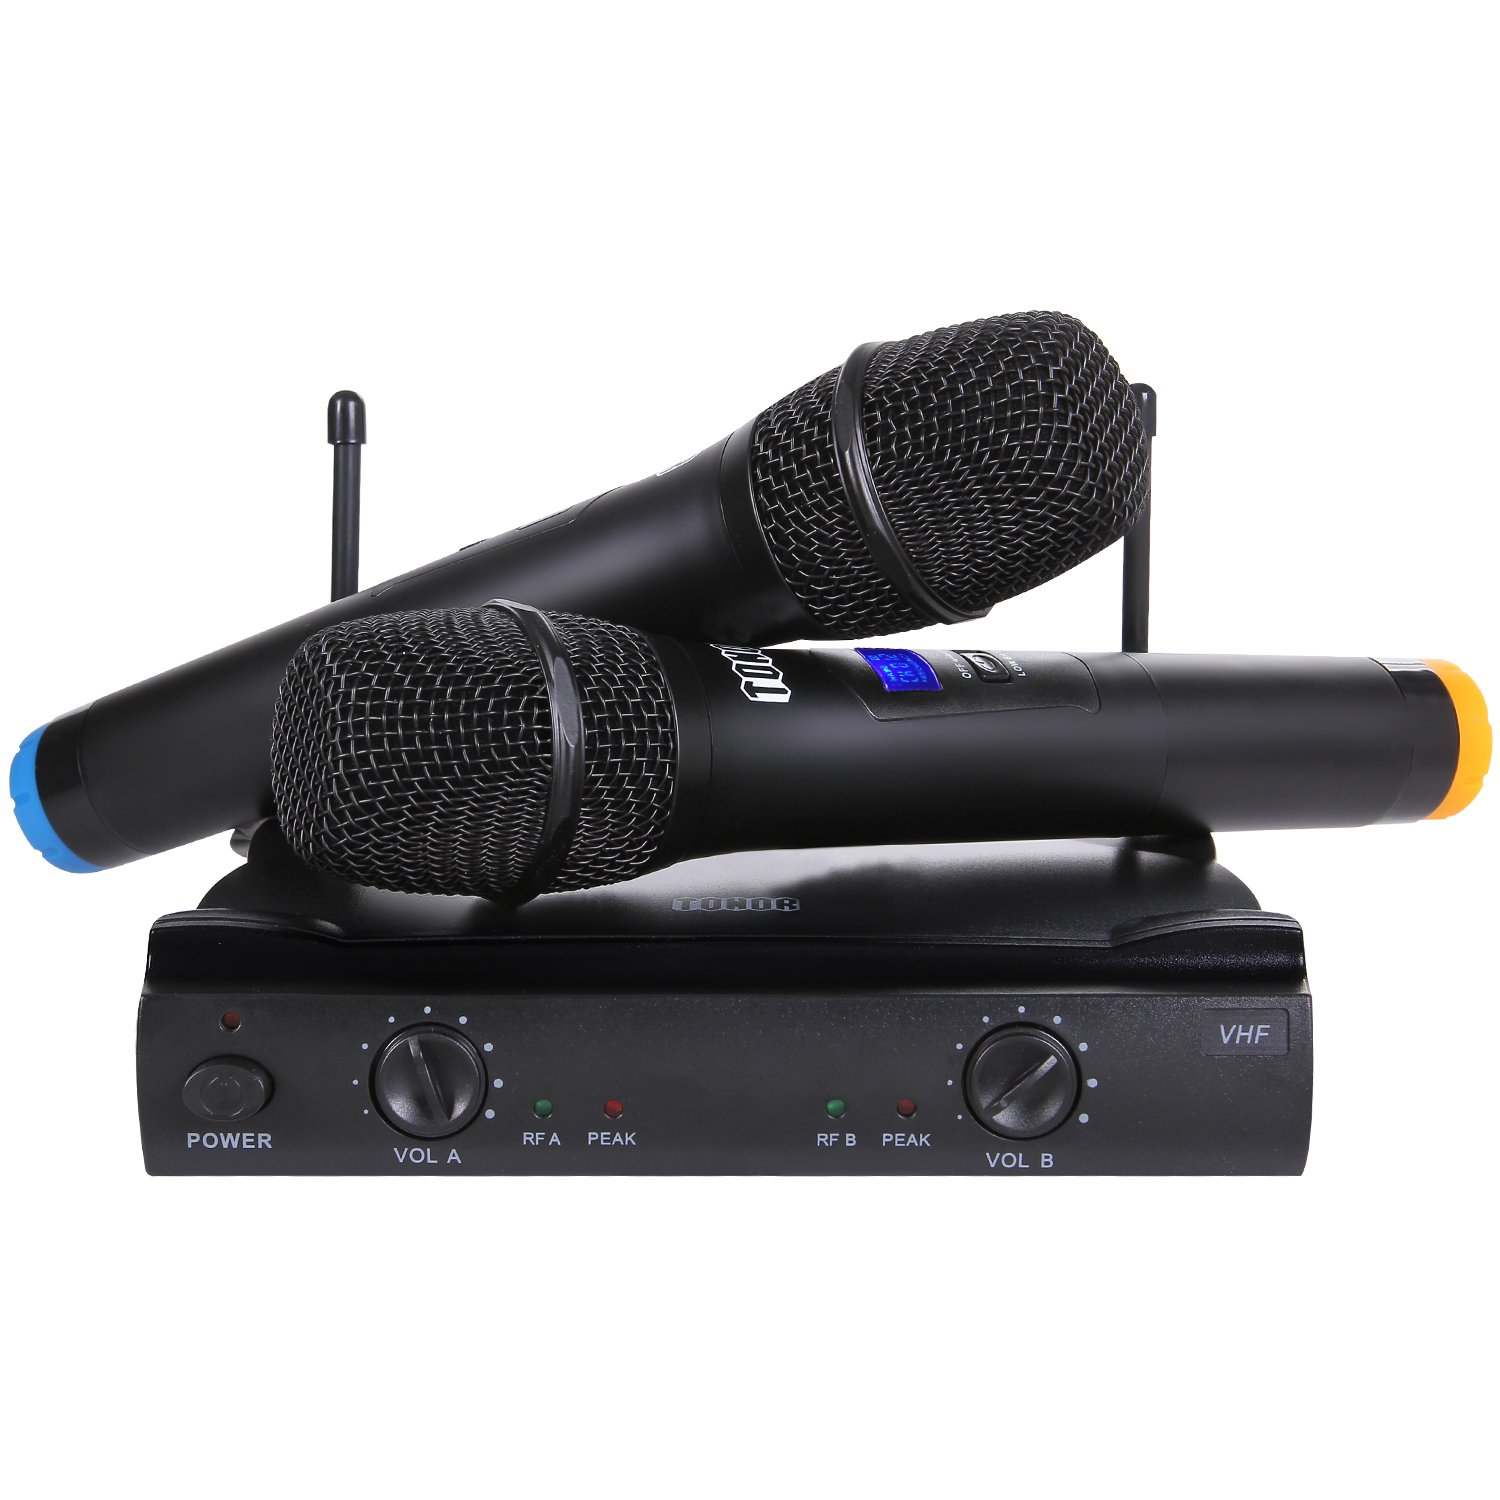 TONOR VHF Handheld Wireless Microphone System with Dual Hand Held Dynamic Microphones and LCD Display for Karaoke Party Classroom Meeting 4330236203